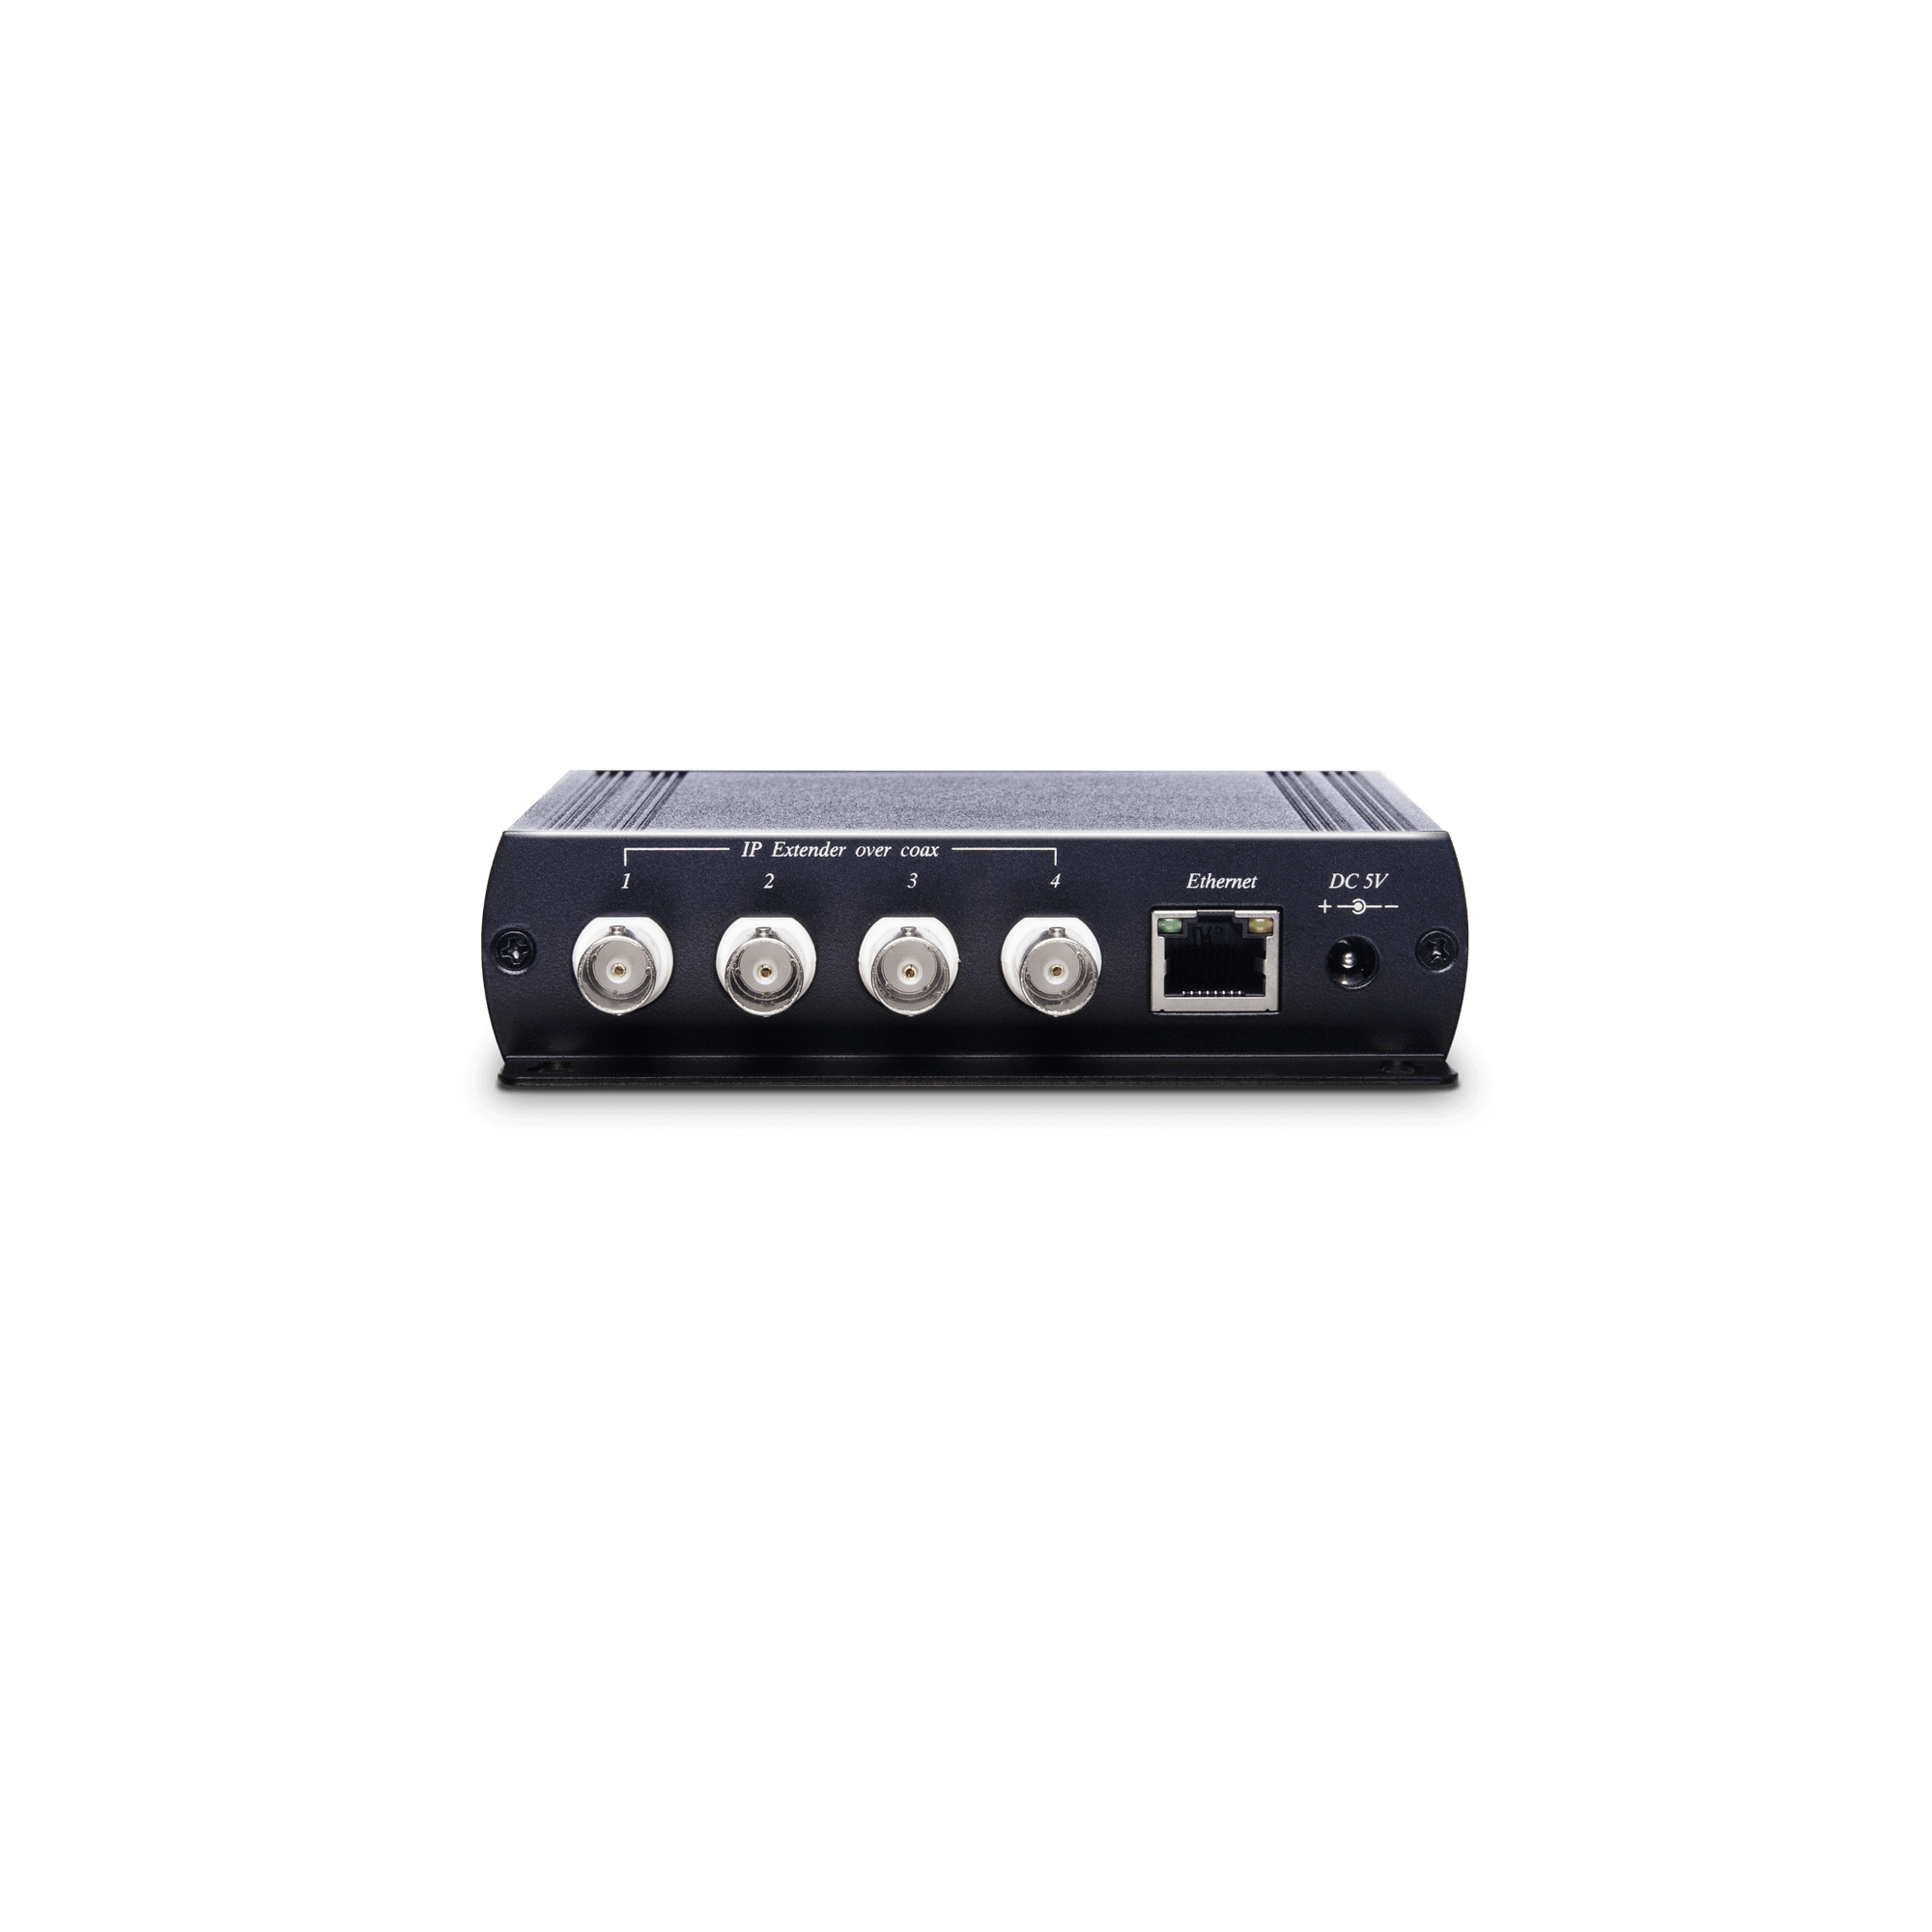 Ethernet Switch Kit with 4 Port BNC and 1 Port RJ45